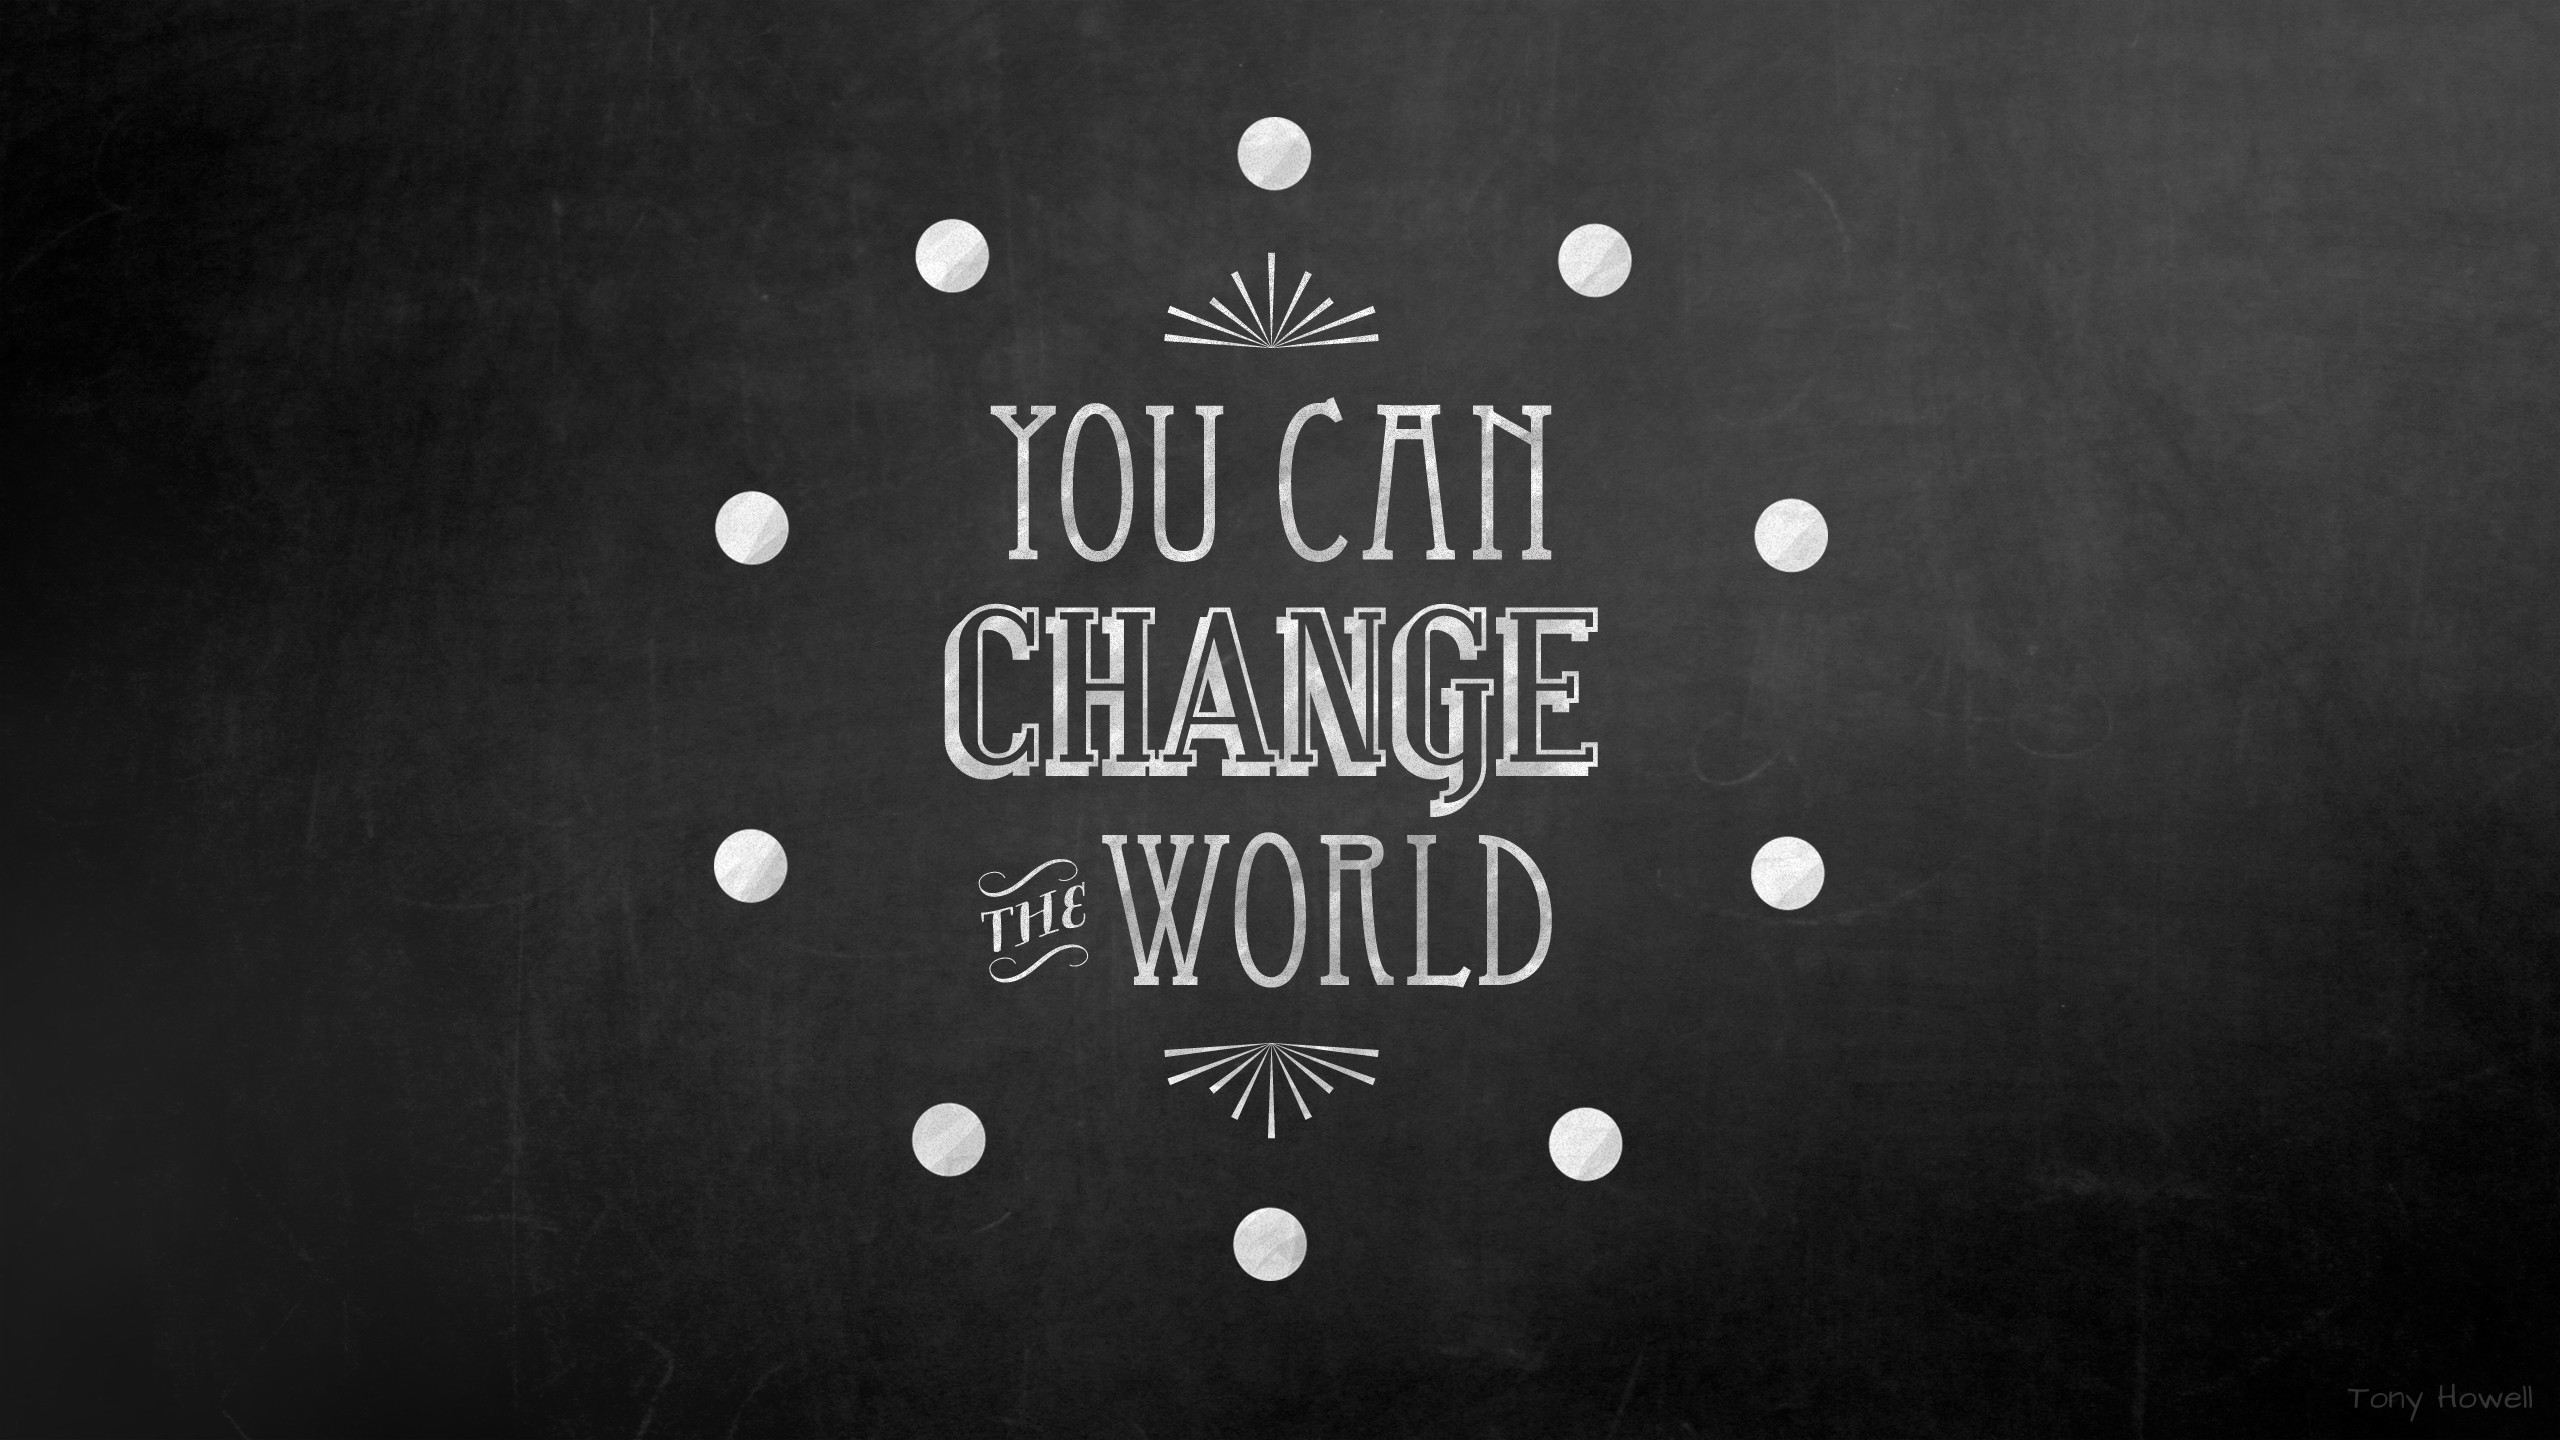 You Can Change the World | #desktop #wallpaper #quote | wallpaper |  Pinterest | Inspirational, Buddhism and Wisdom